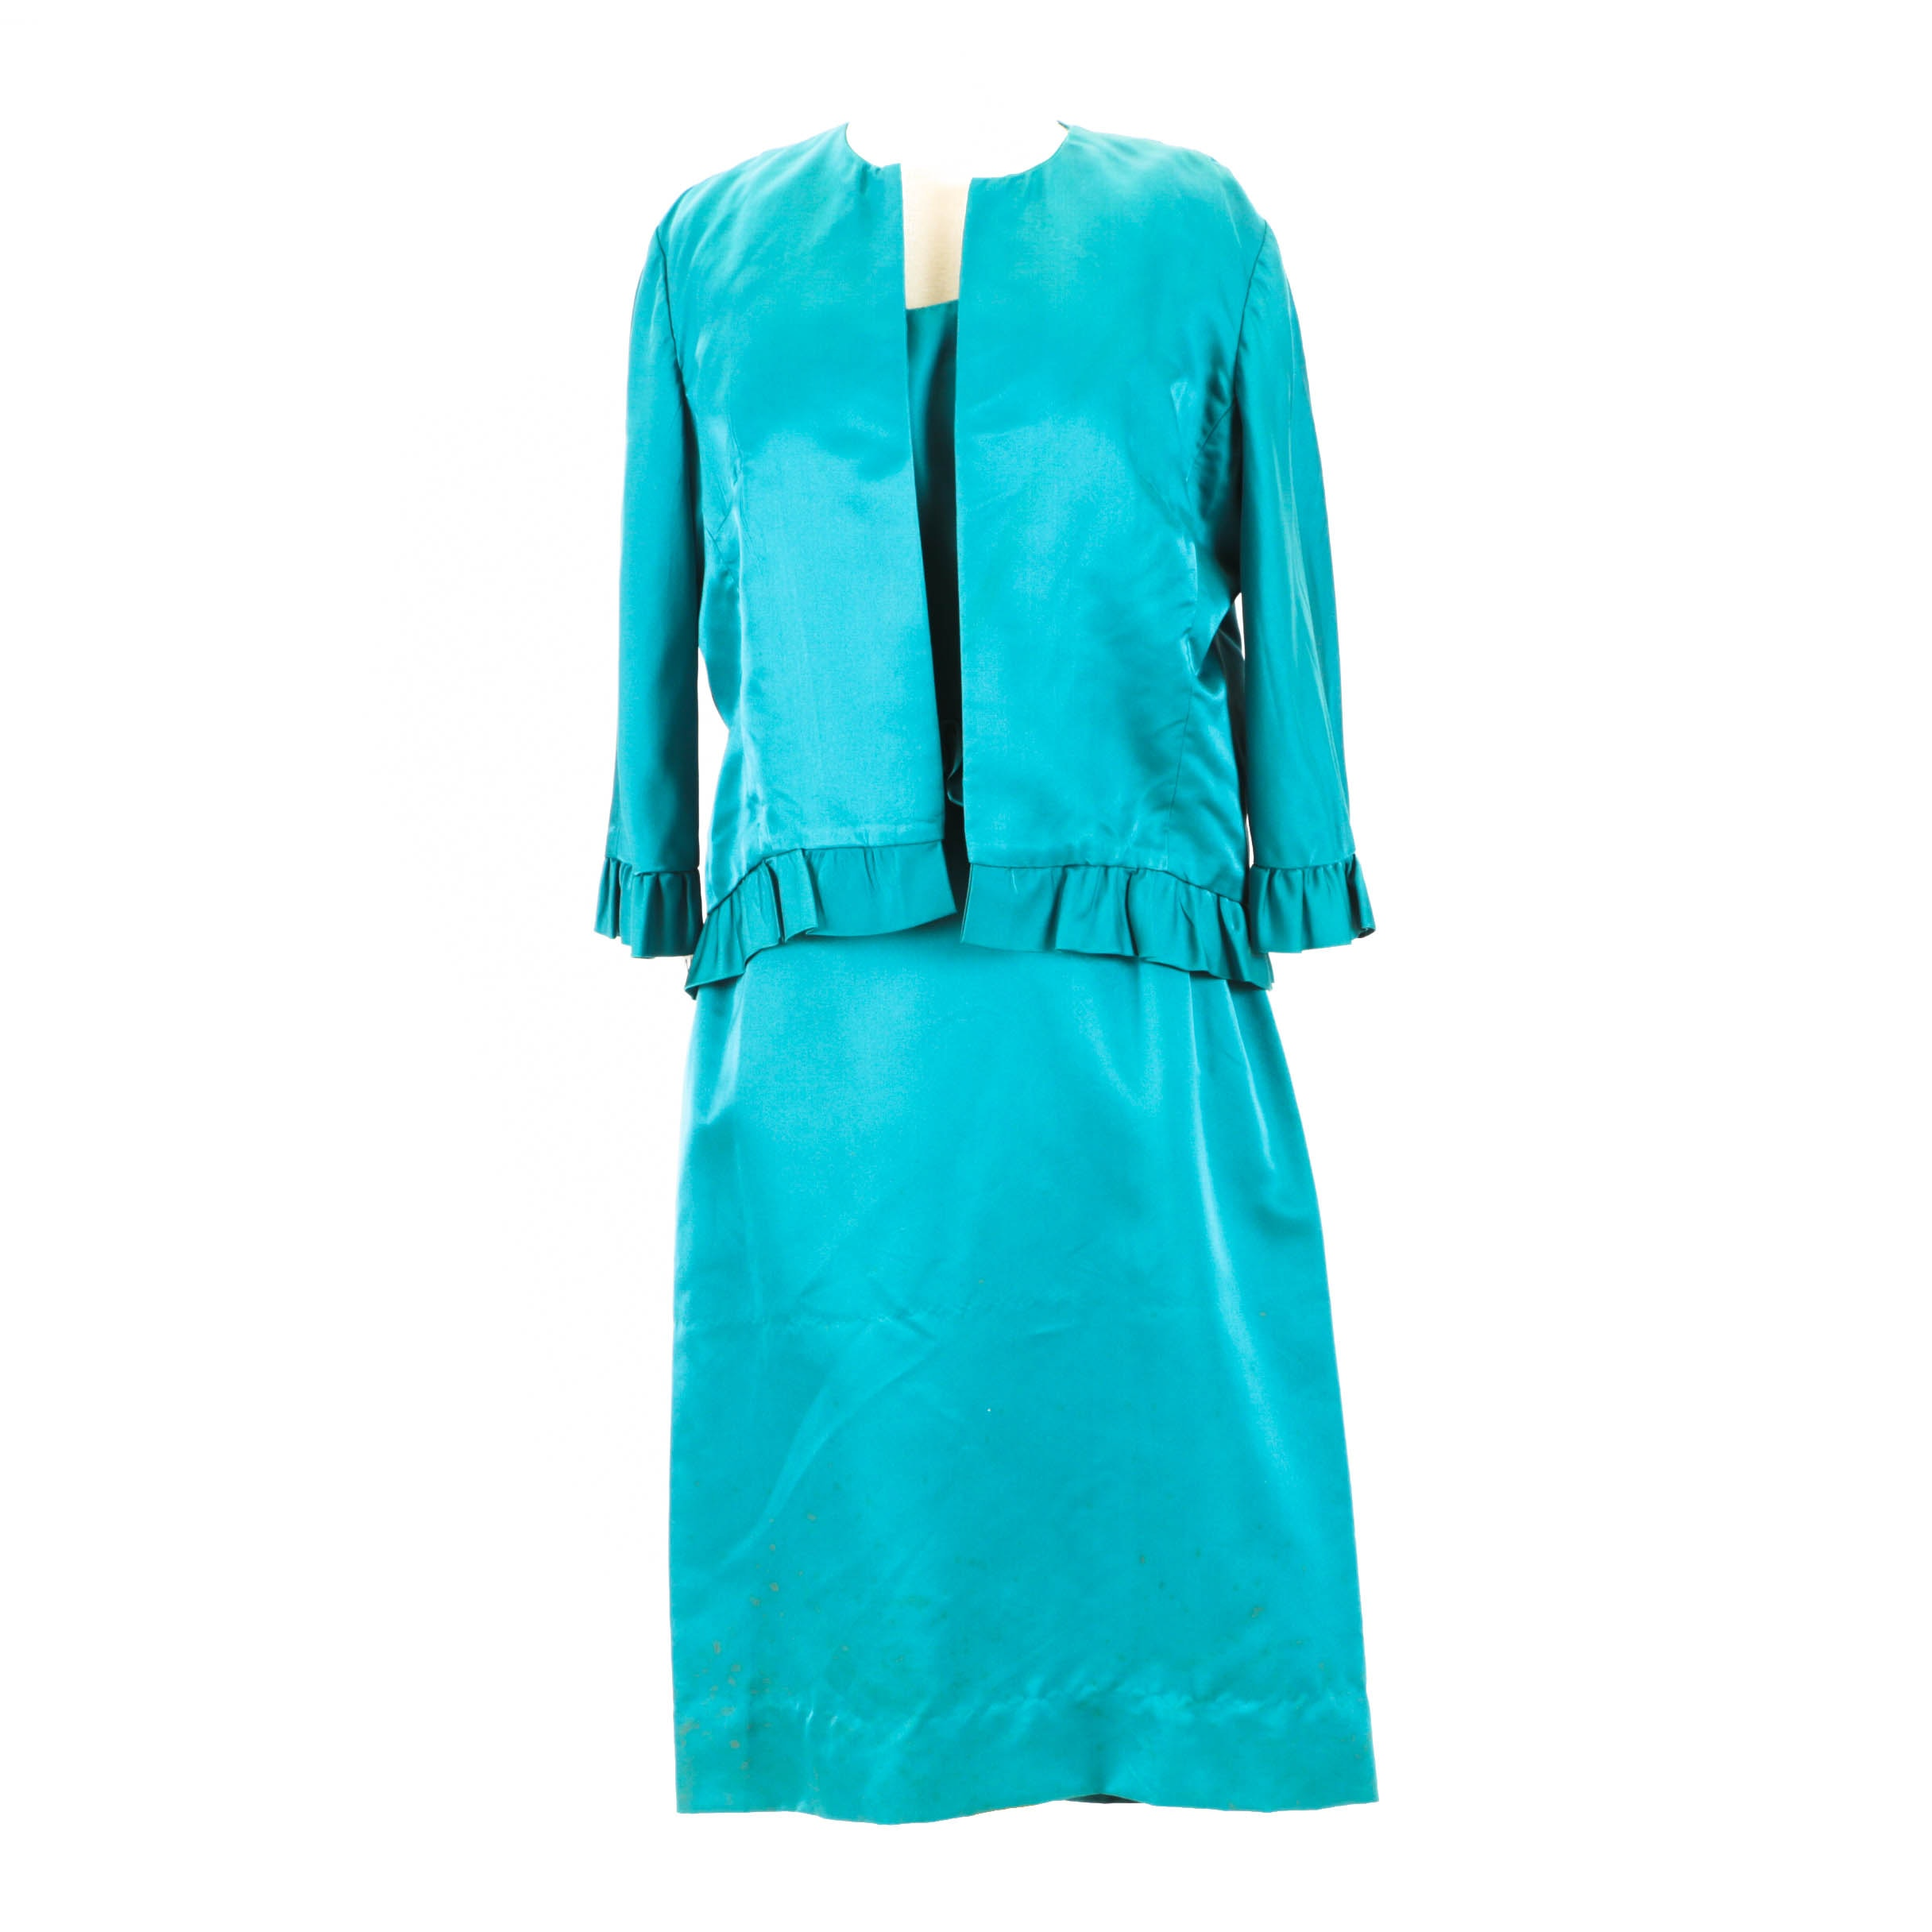 Women's 1960s Vintage Sleeveless Dress and Jacket in Turquoise Blue Satin